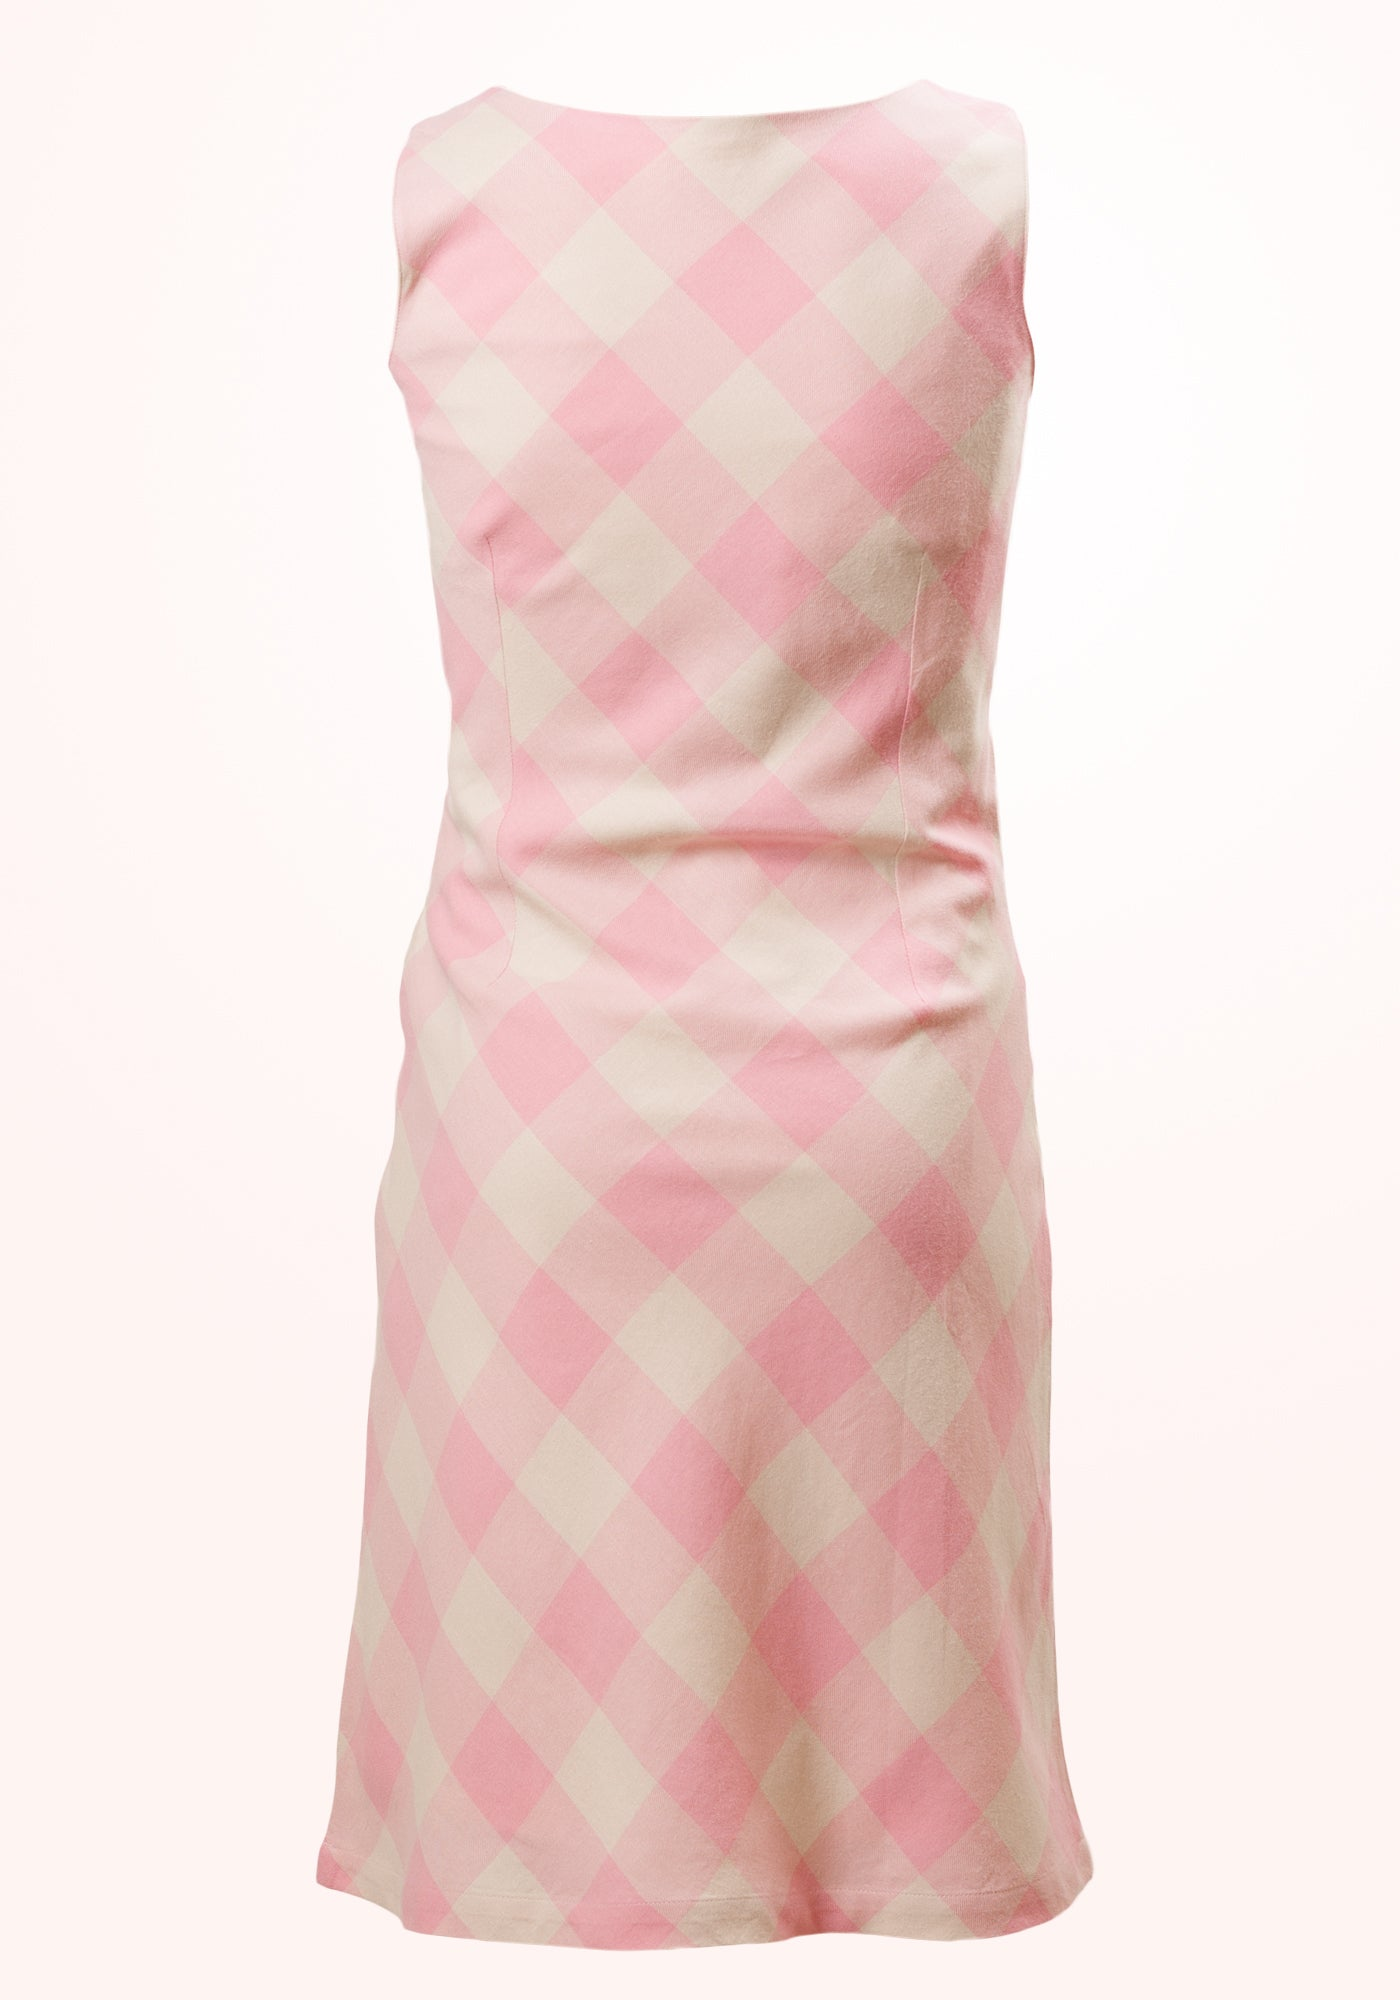 Peaches & Cream Girls Short Dress in Yarn Dyed Checks - MINC ecofashion